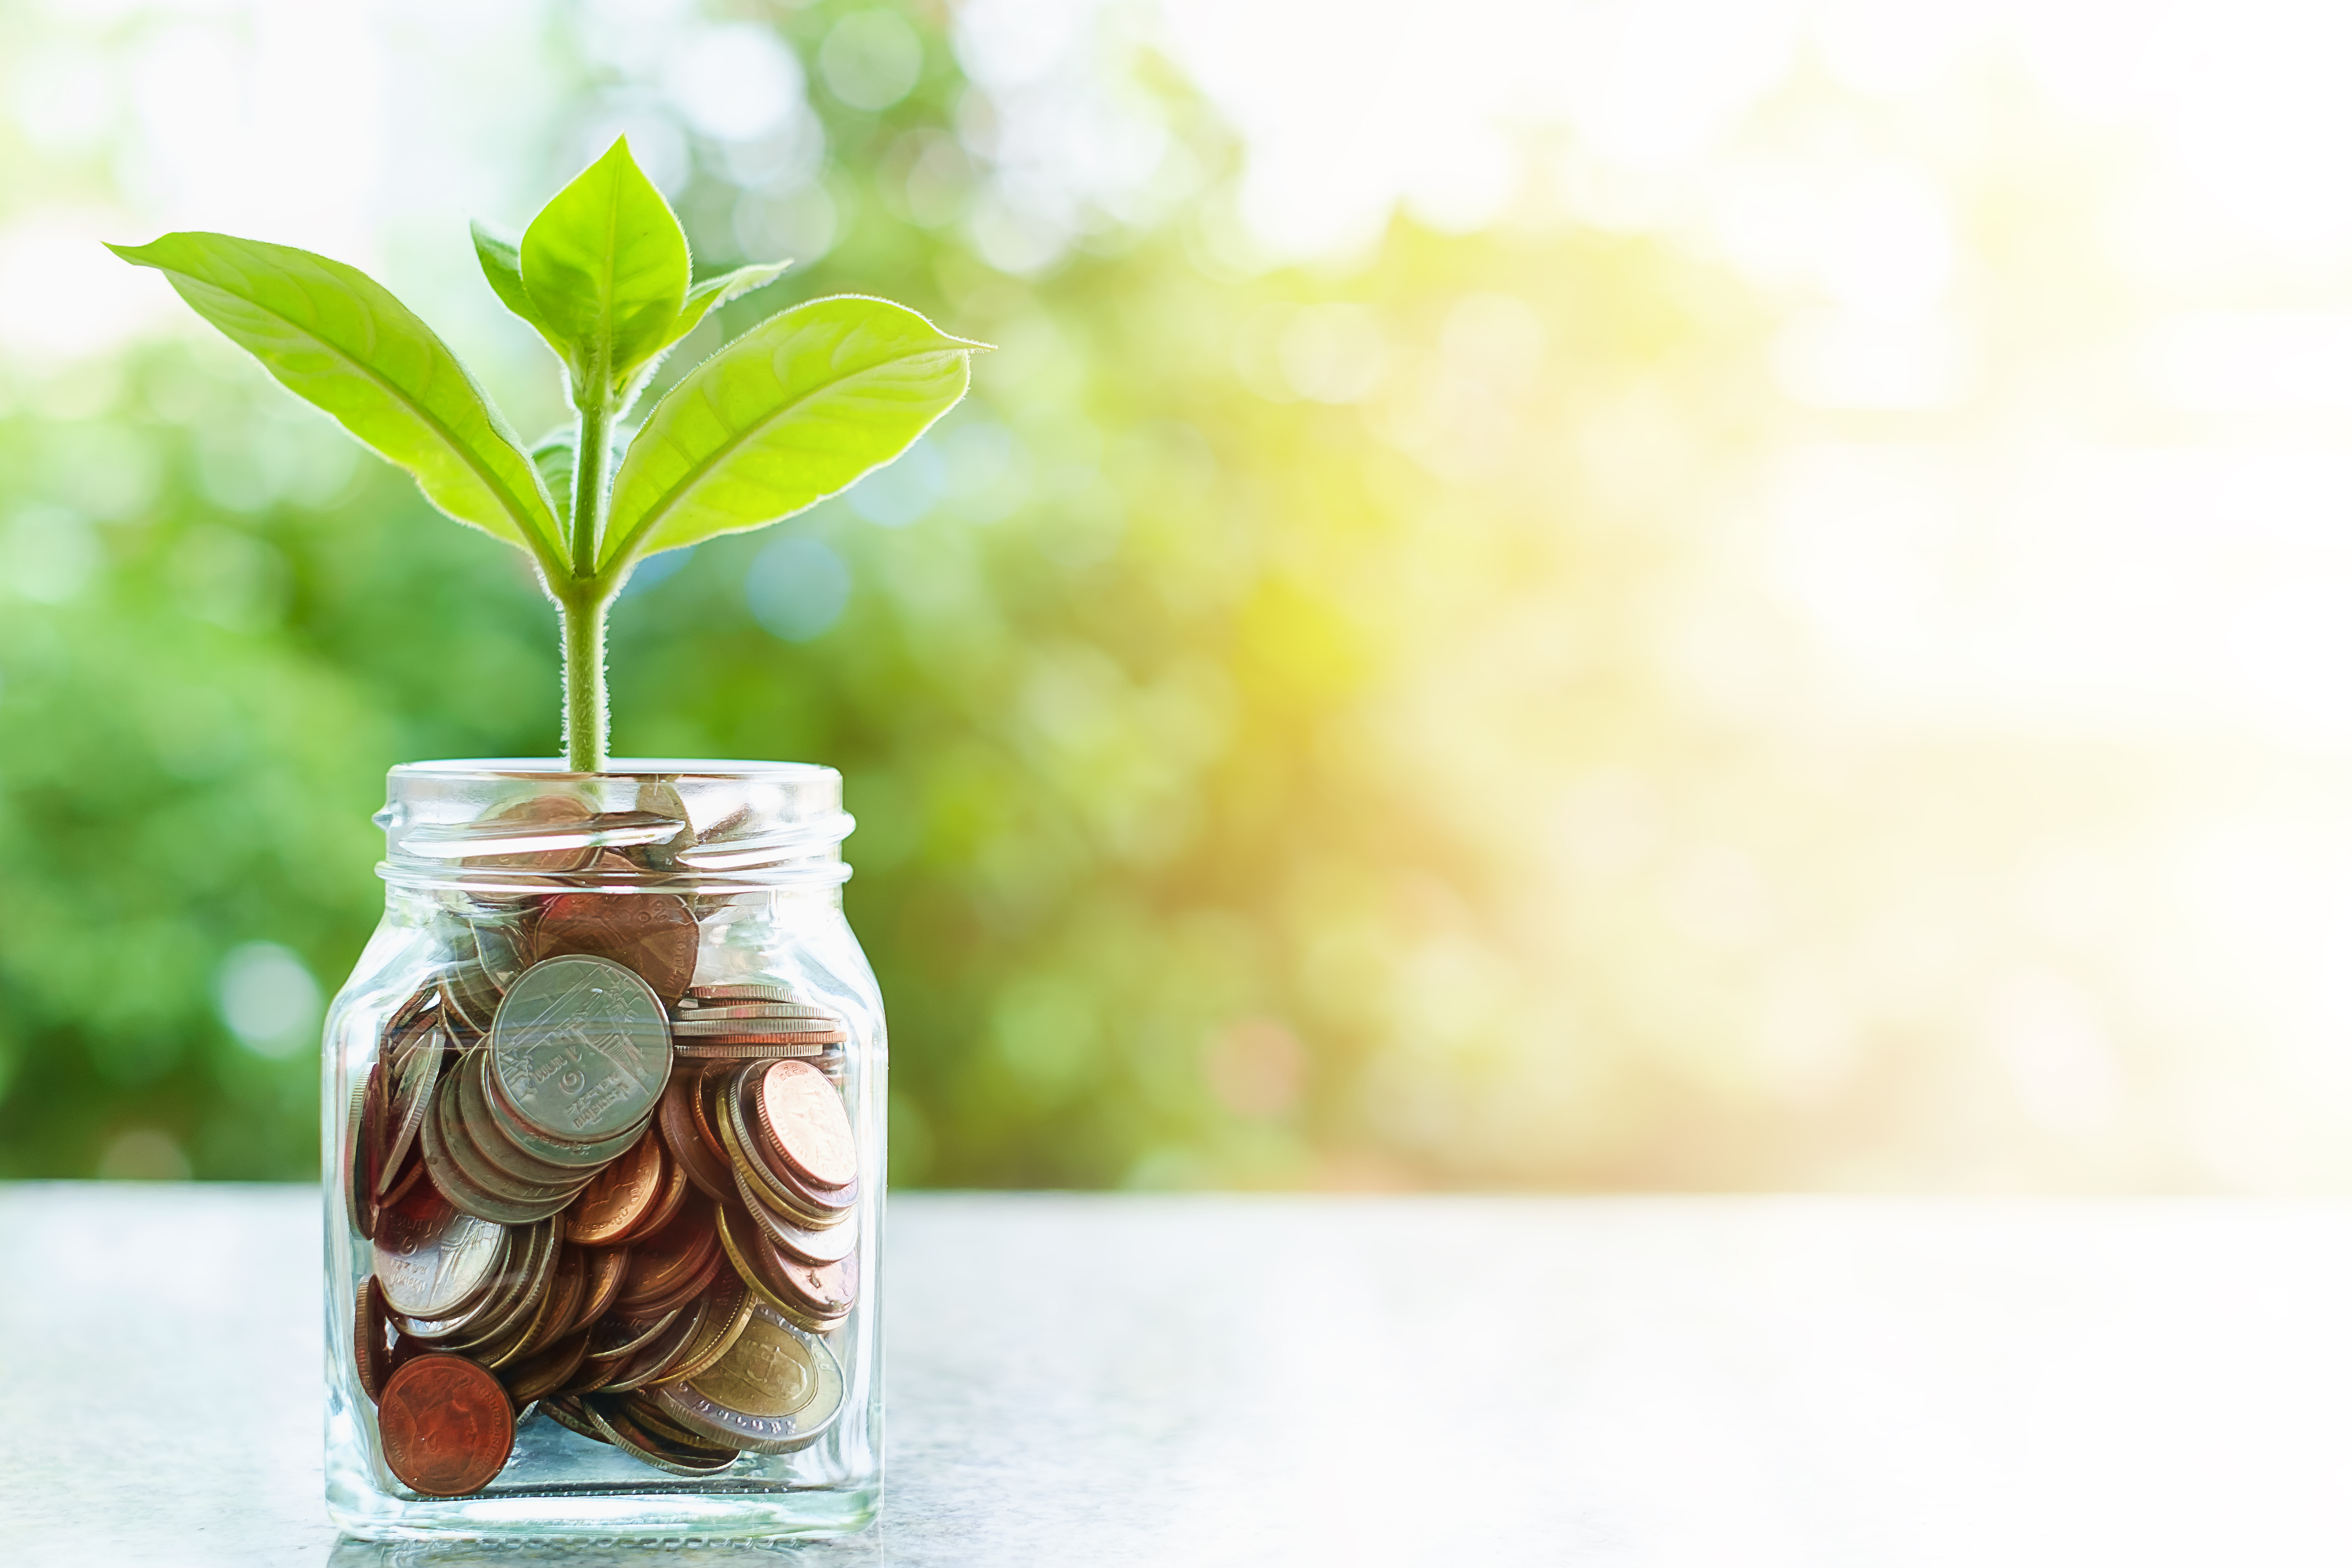 Plant growing from coins in the glass jar on blurred green natural background with sun light effect